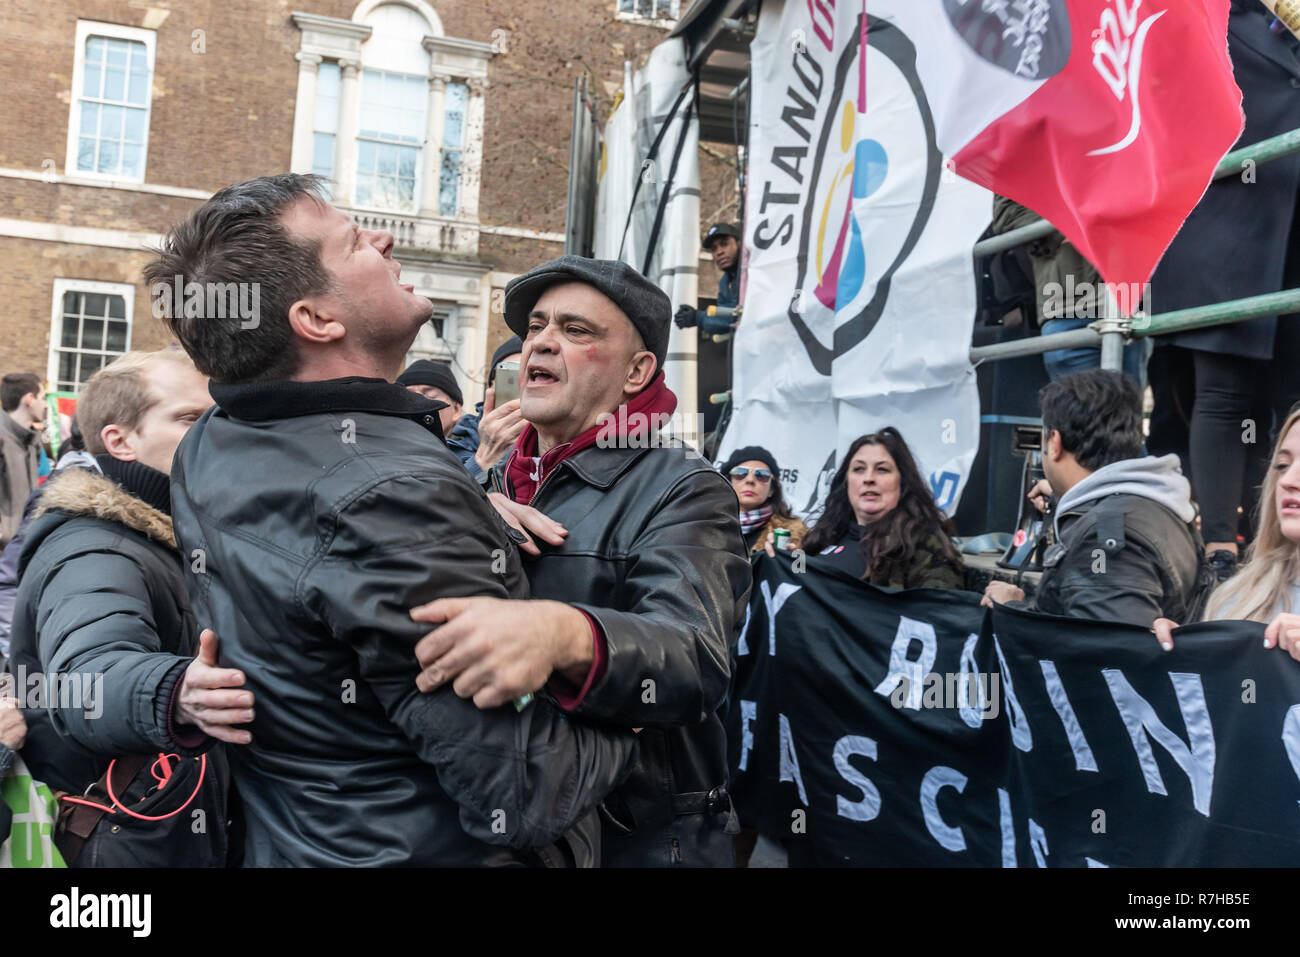 London, UK. 9th Dec, 2018. People argue with a heckler at the rally by united anti-fascists in opposition to Tommy Robinson's fascist pro-Brexit march. The protest by both remain and leave supporting anti-fascists gathered at the BBC and marched to a rally at Downing St. Police had issued conditions on both events designed to keep the two groups well apart. Credit: Peter Marshall/Alamy Live News Stock Photo